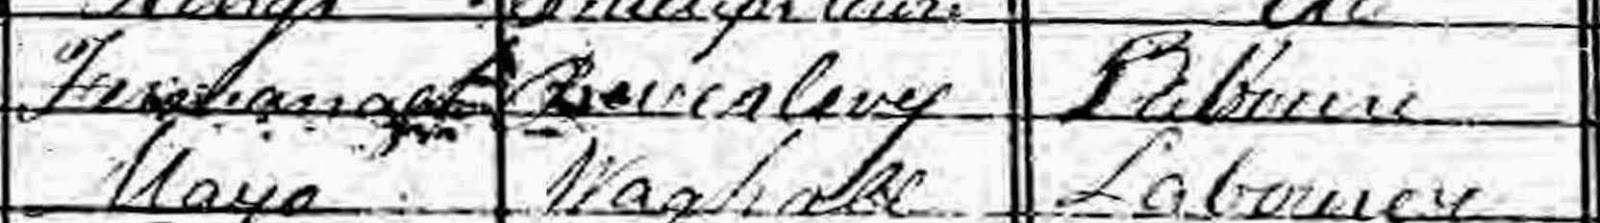 Crowdsourcing for Genealogy - What Does the Record Say?